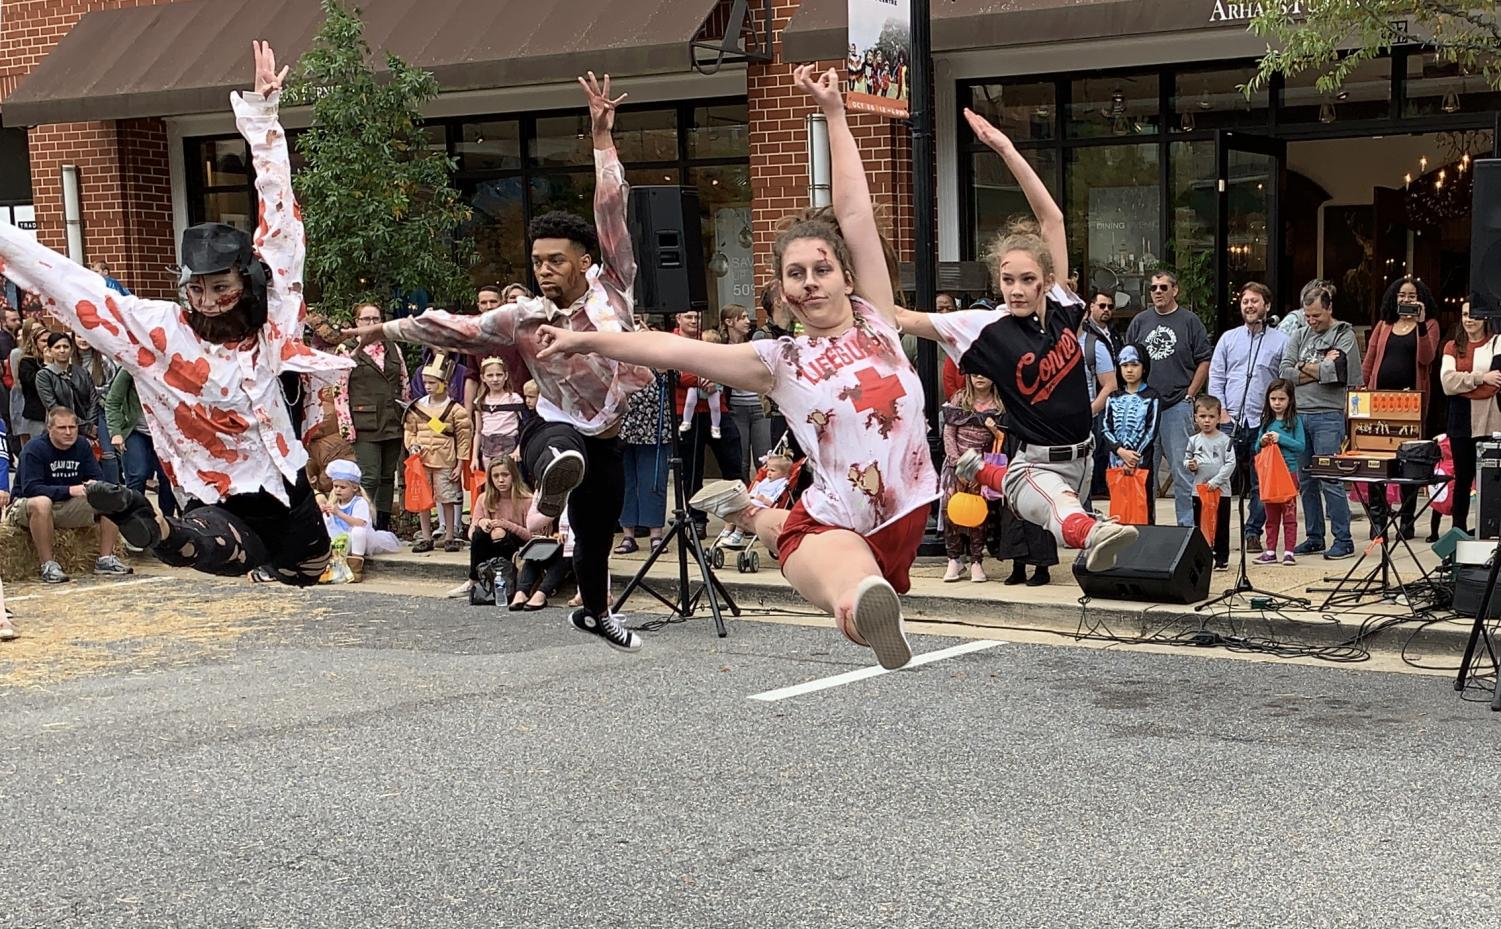 Maryland Performing Art Center's Elite Dance Company (2019 performance)